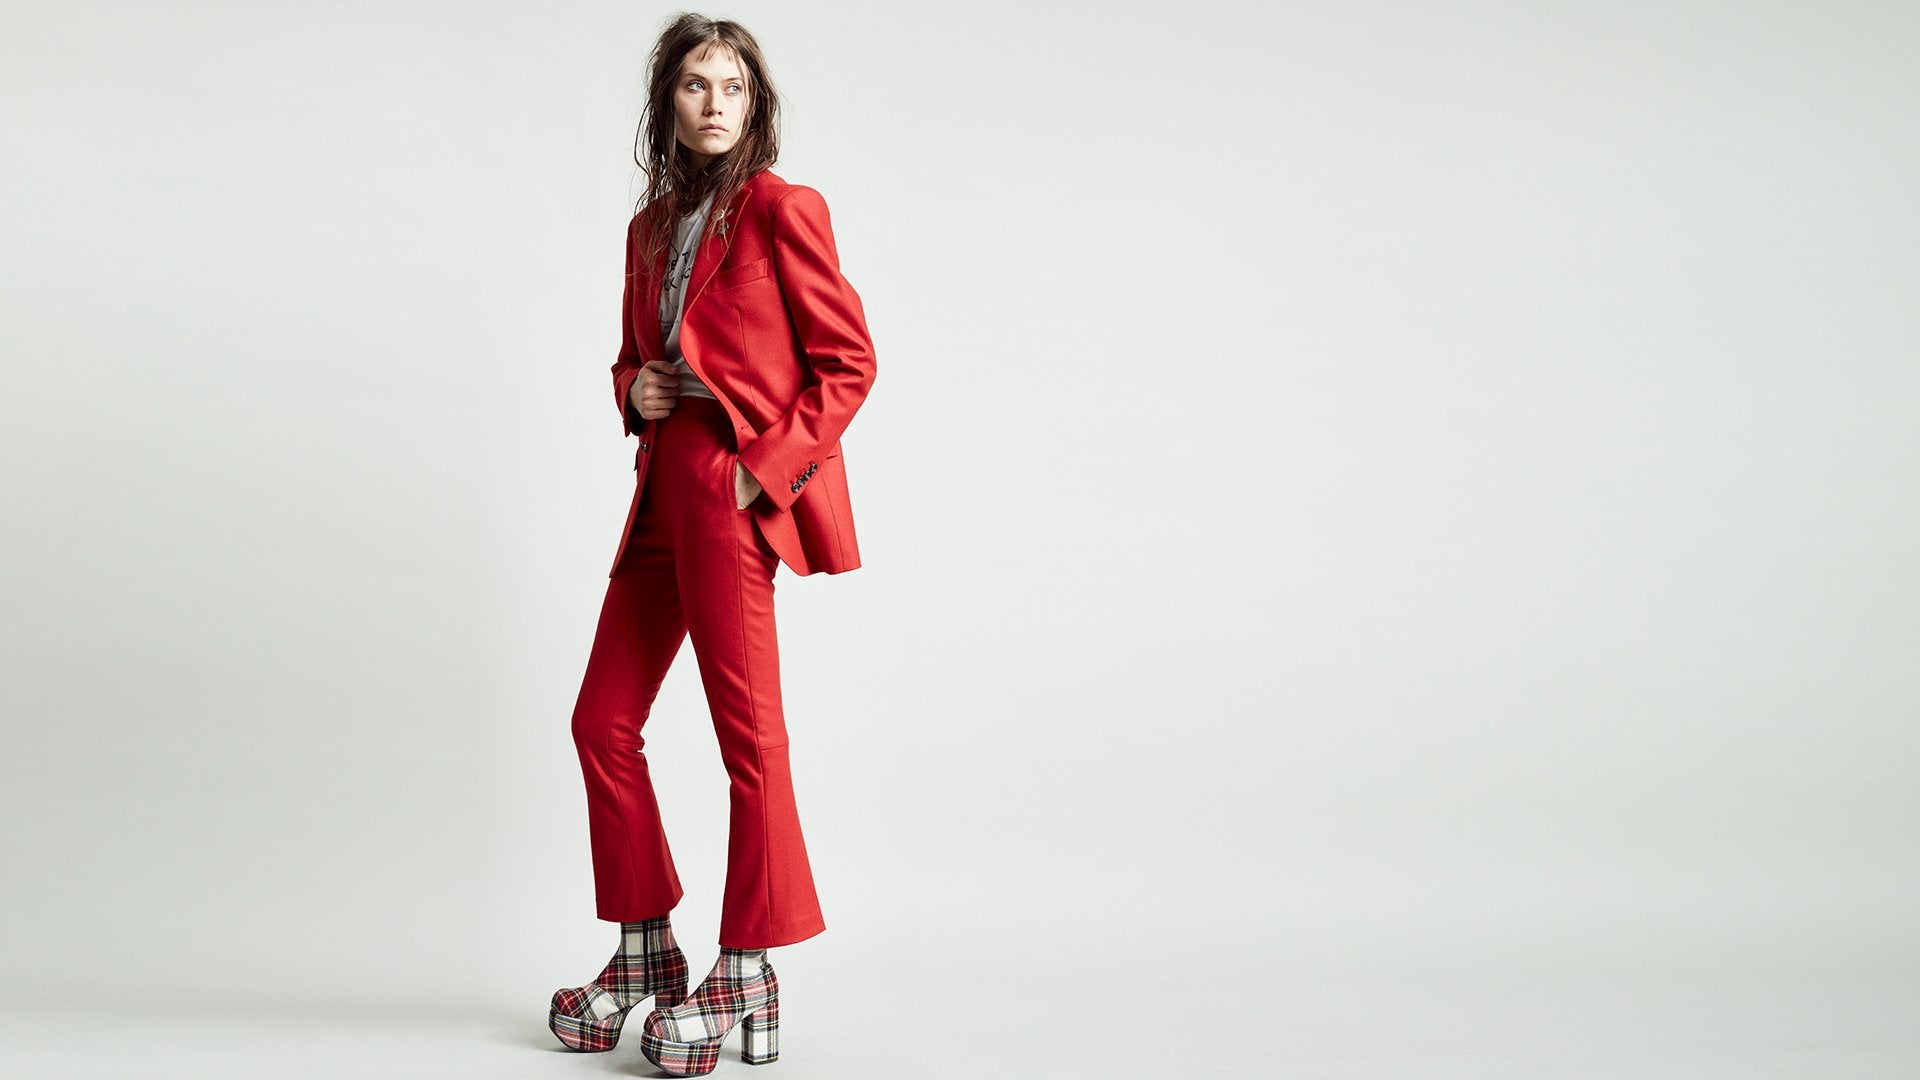 Womens PF18 Lookbook Image 10